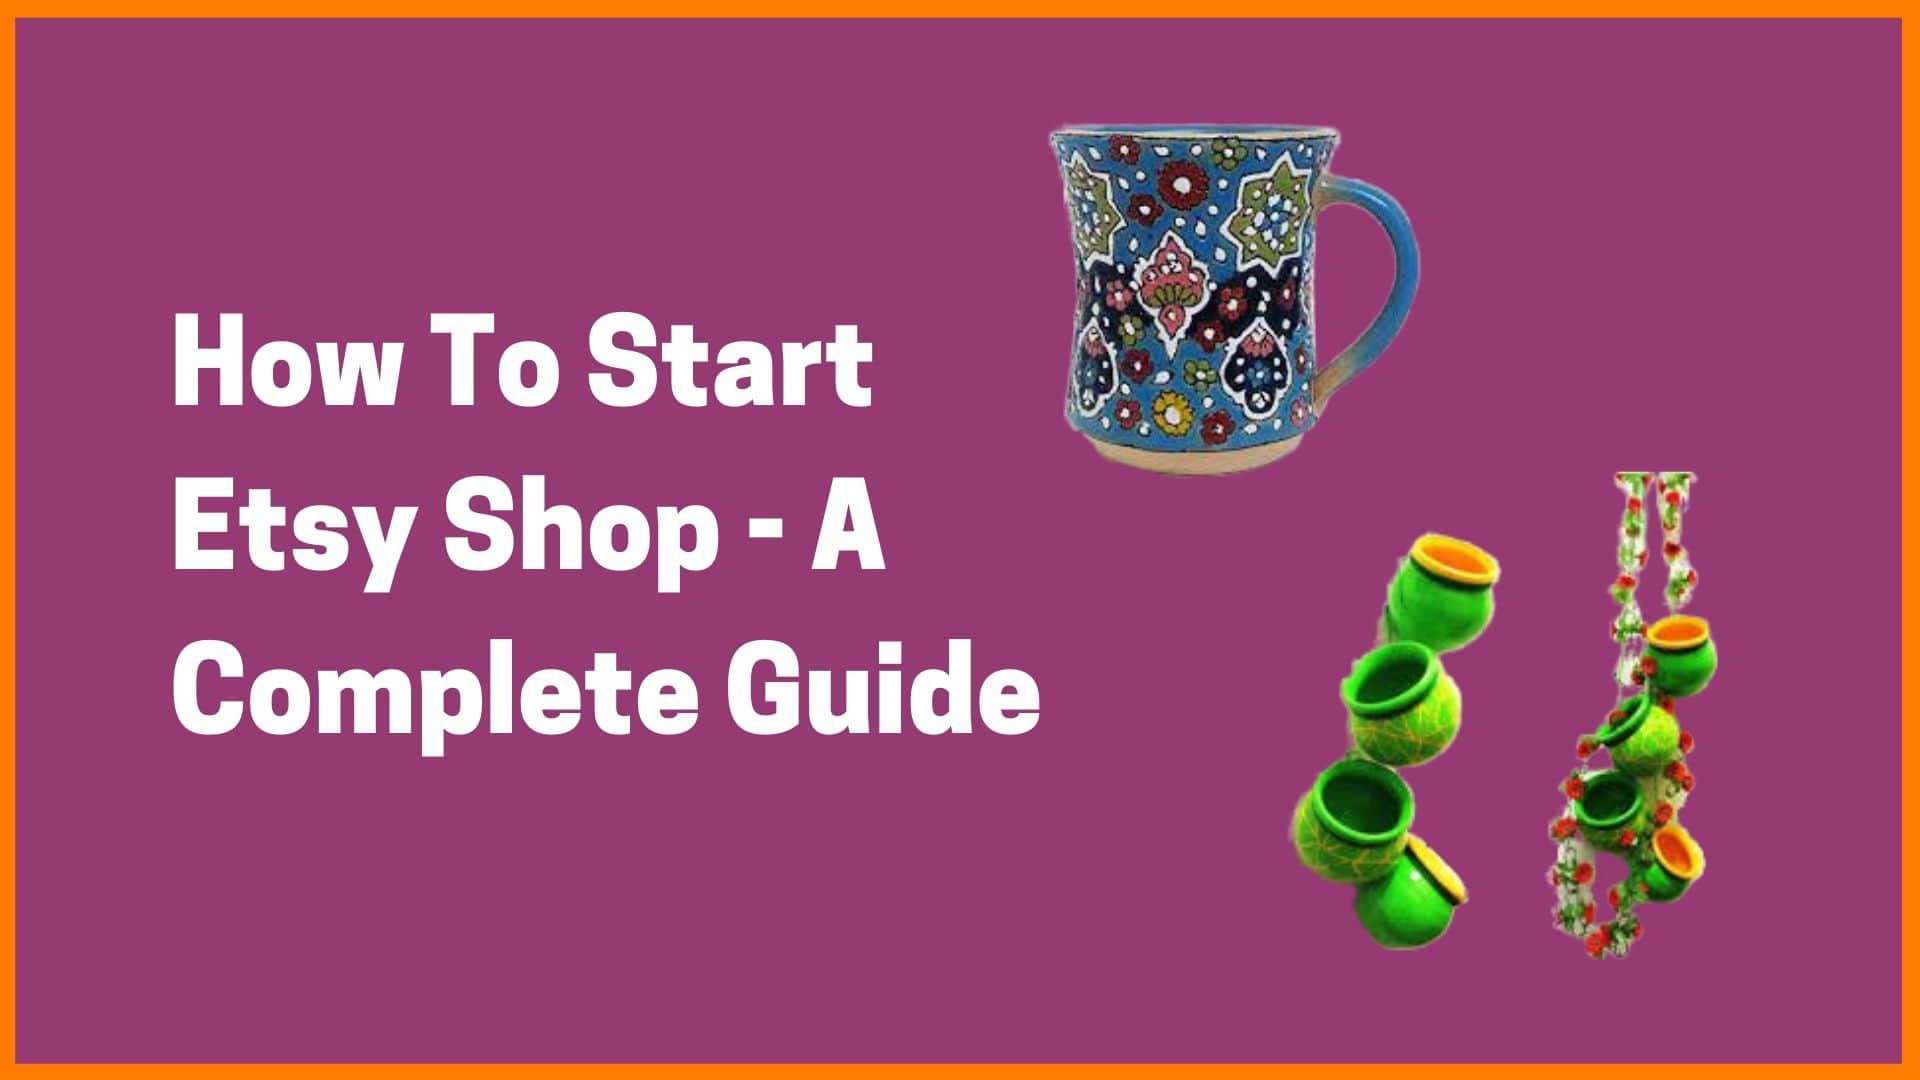 How To Start An Etsy Shop: A Complete Guide